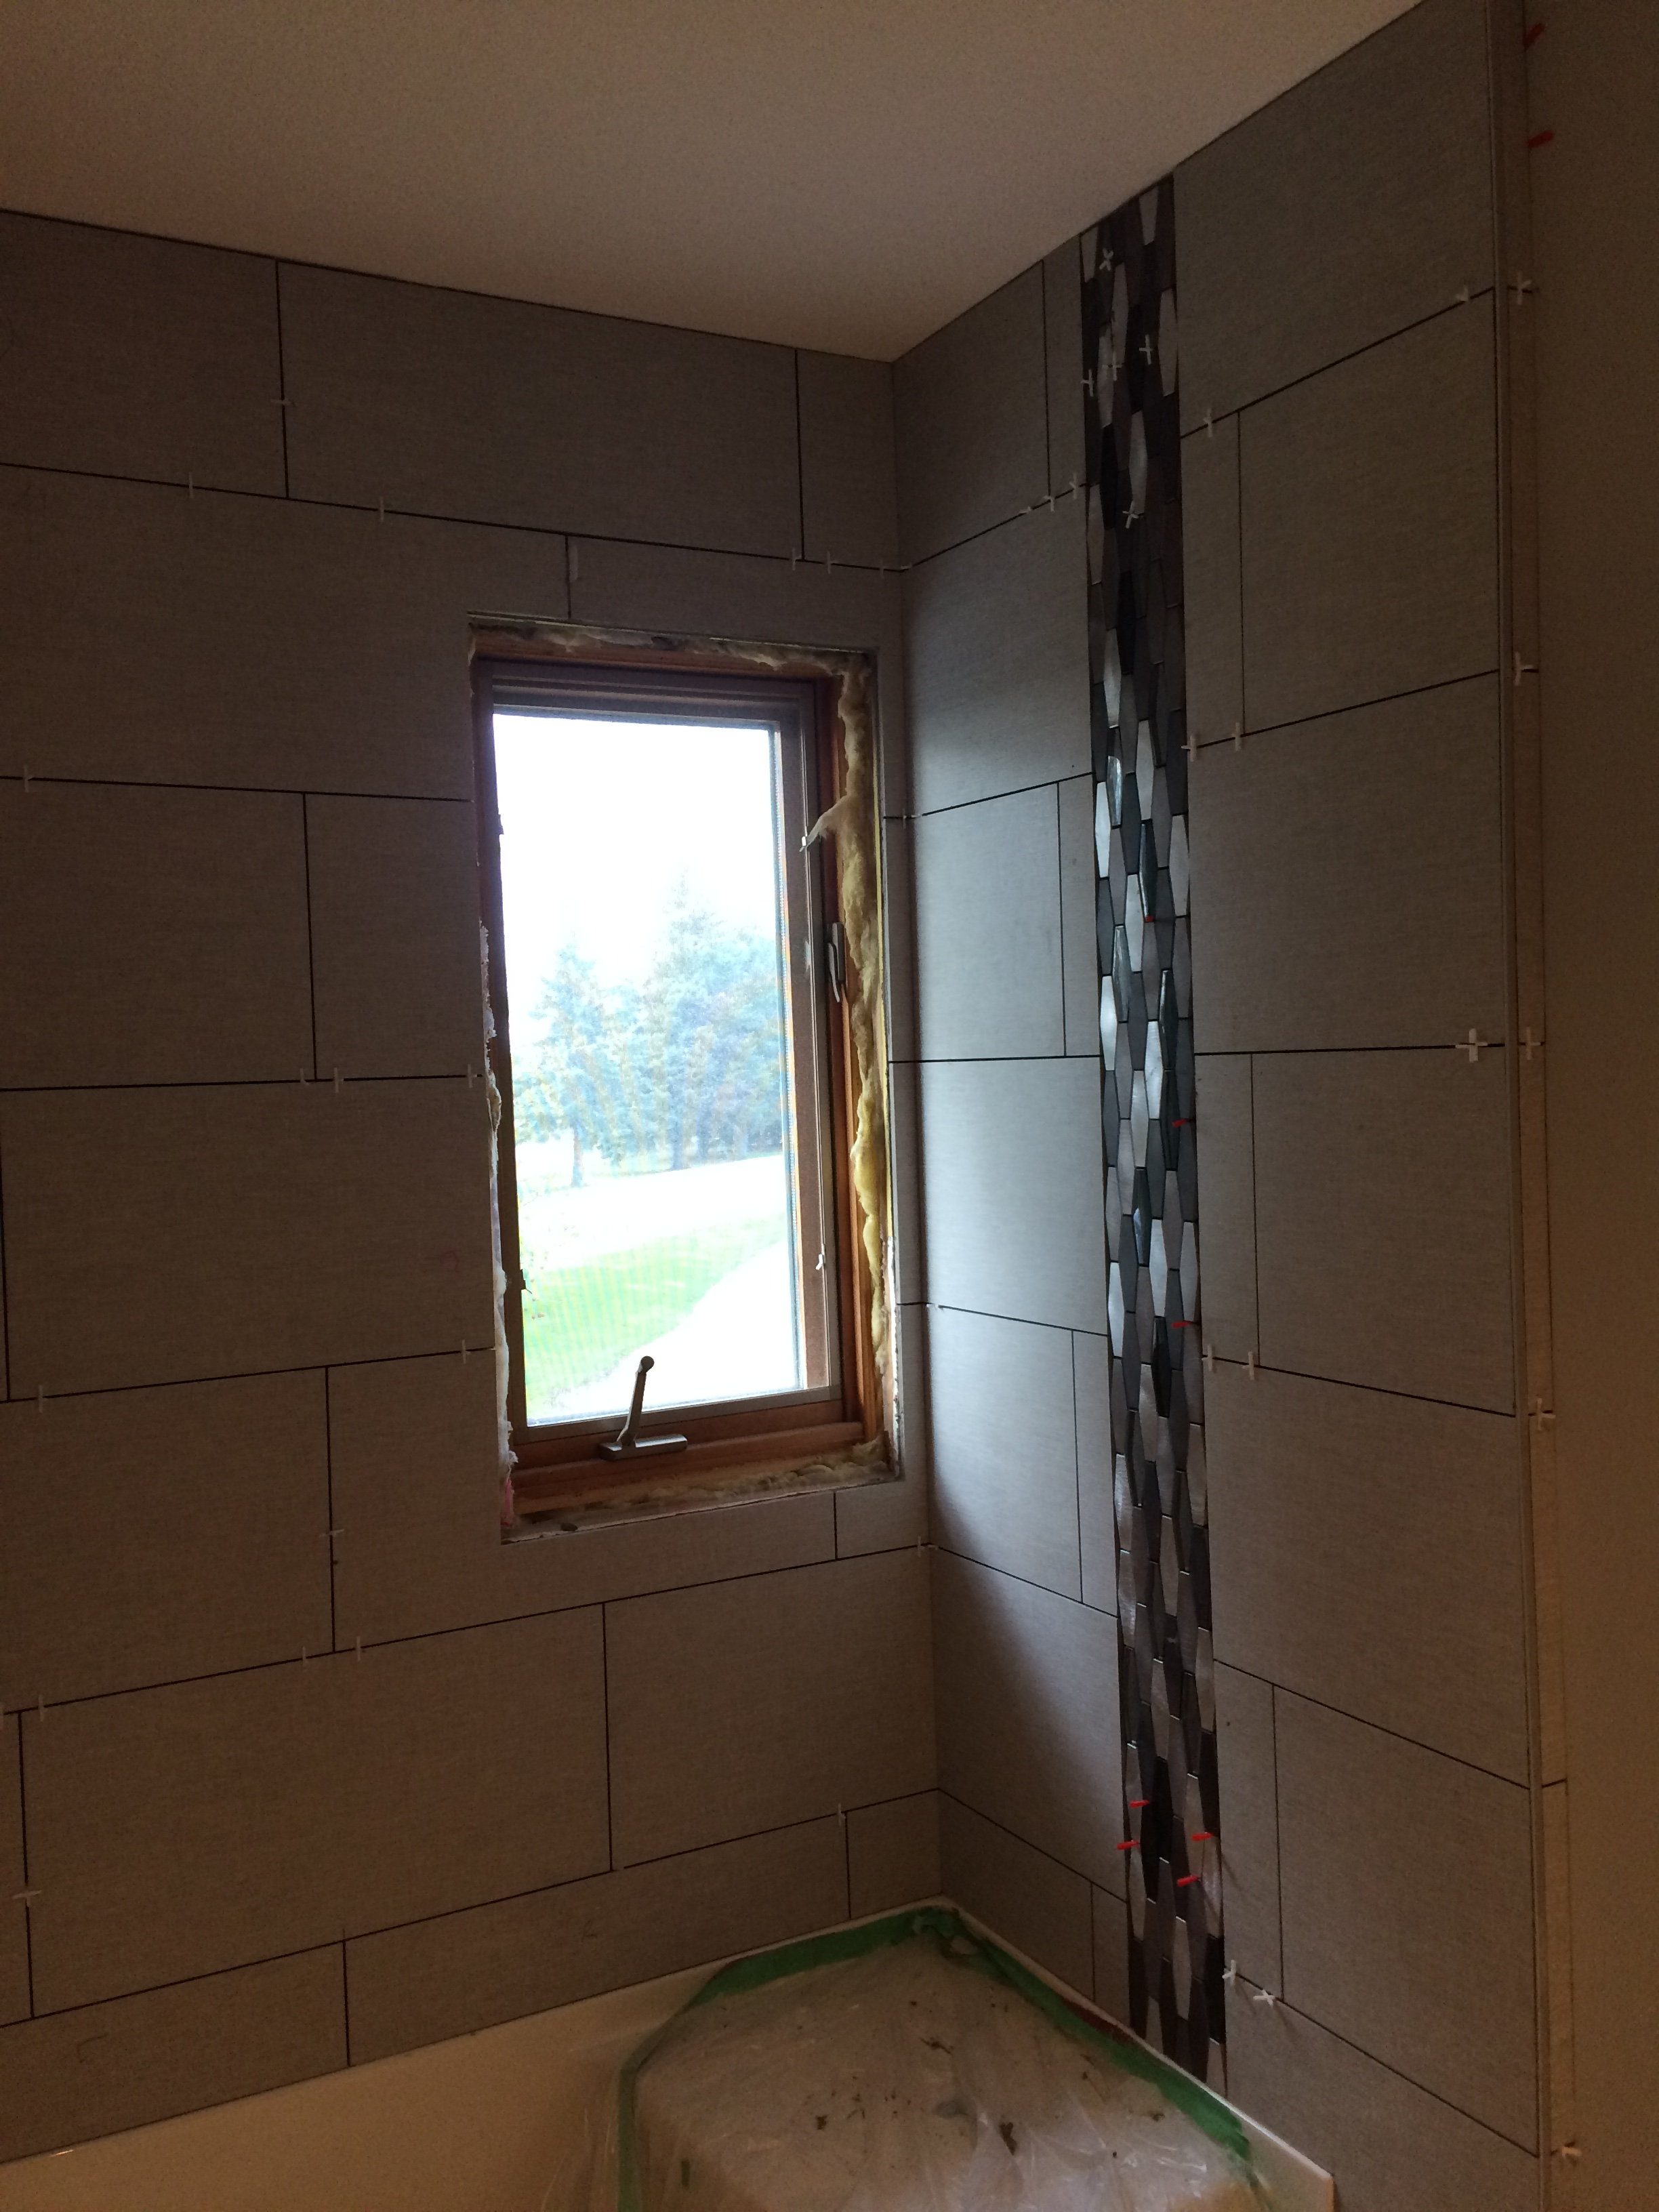 Bathroom renovation (during)